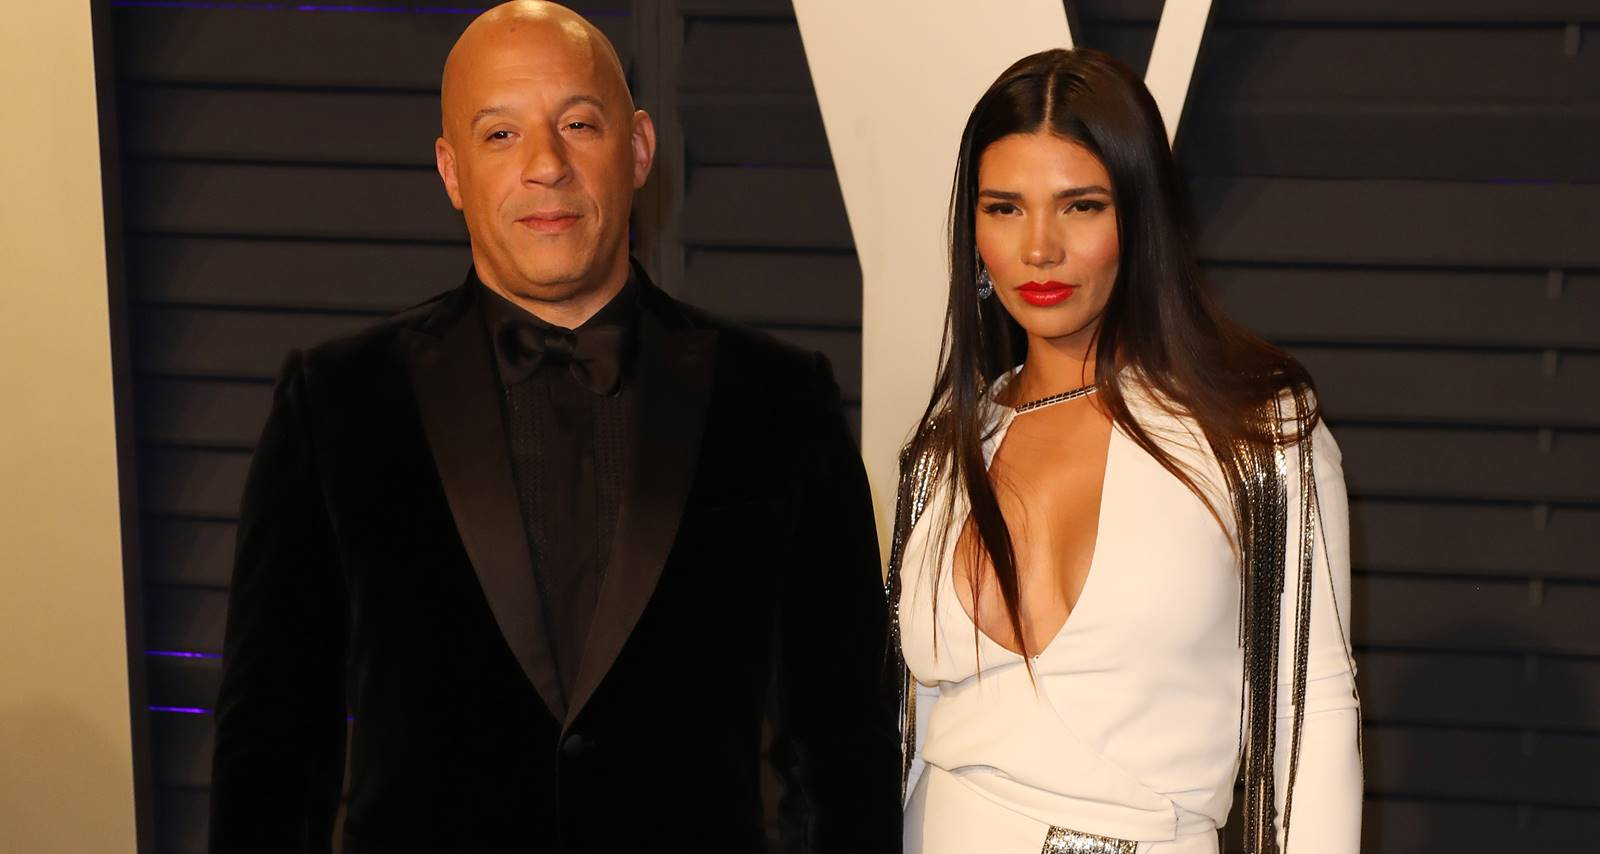 Paloma Jiménez Wiki, Age, Career, Kids and Facts About Vin Diesel's Partner